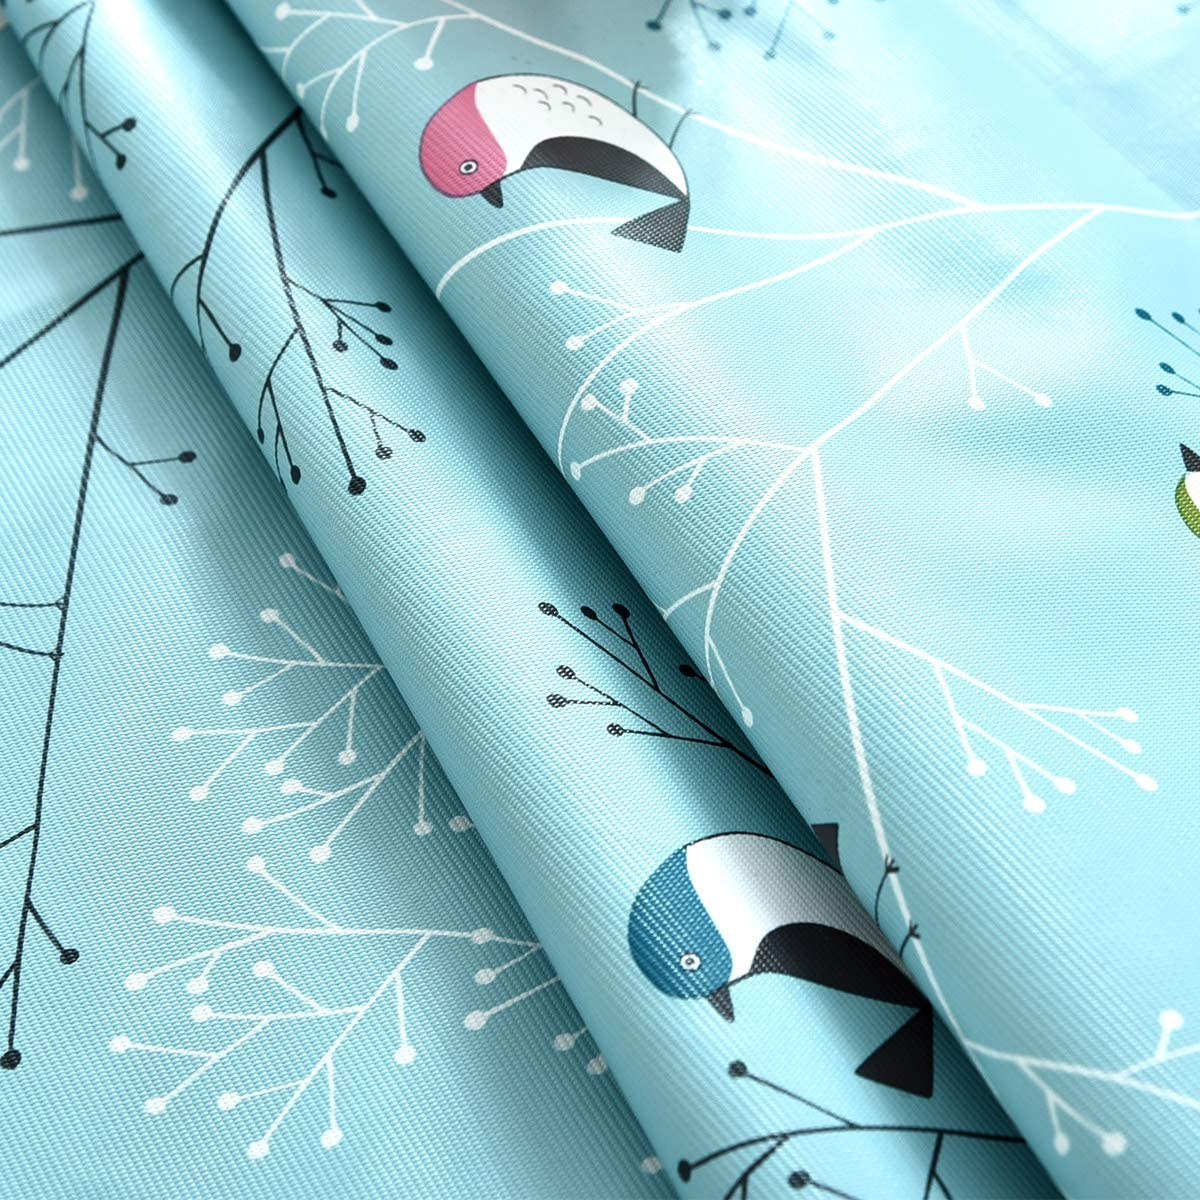 6Ft Bird Tablecloth Silver Grey 54 x 72 Inch Vinyl Oilcloth Tablecloth Small Rectangle Peva Vynle Wipeable PVC Waterproof Plastic Spill Proof Tablecloths Weights for Outdoor Picnic Camping